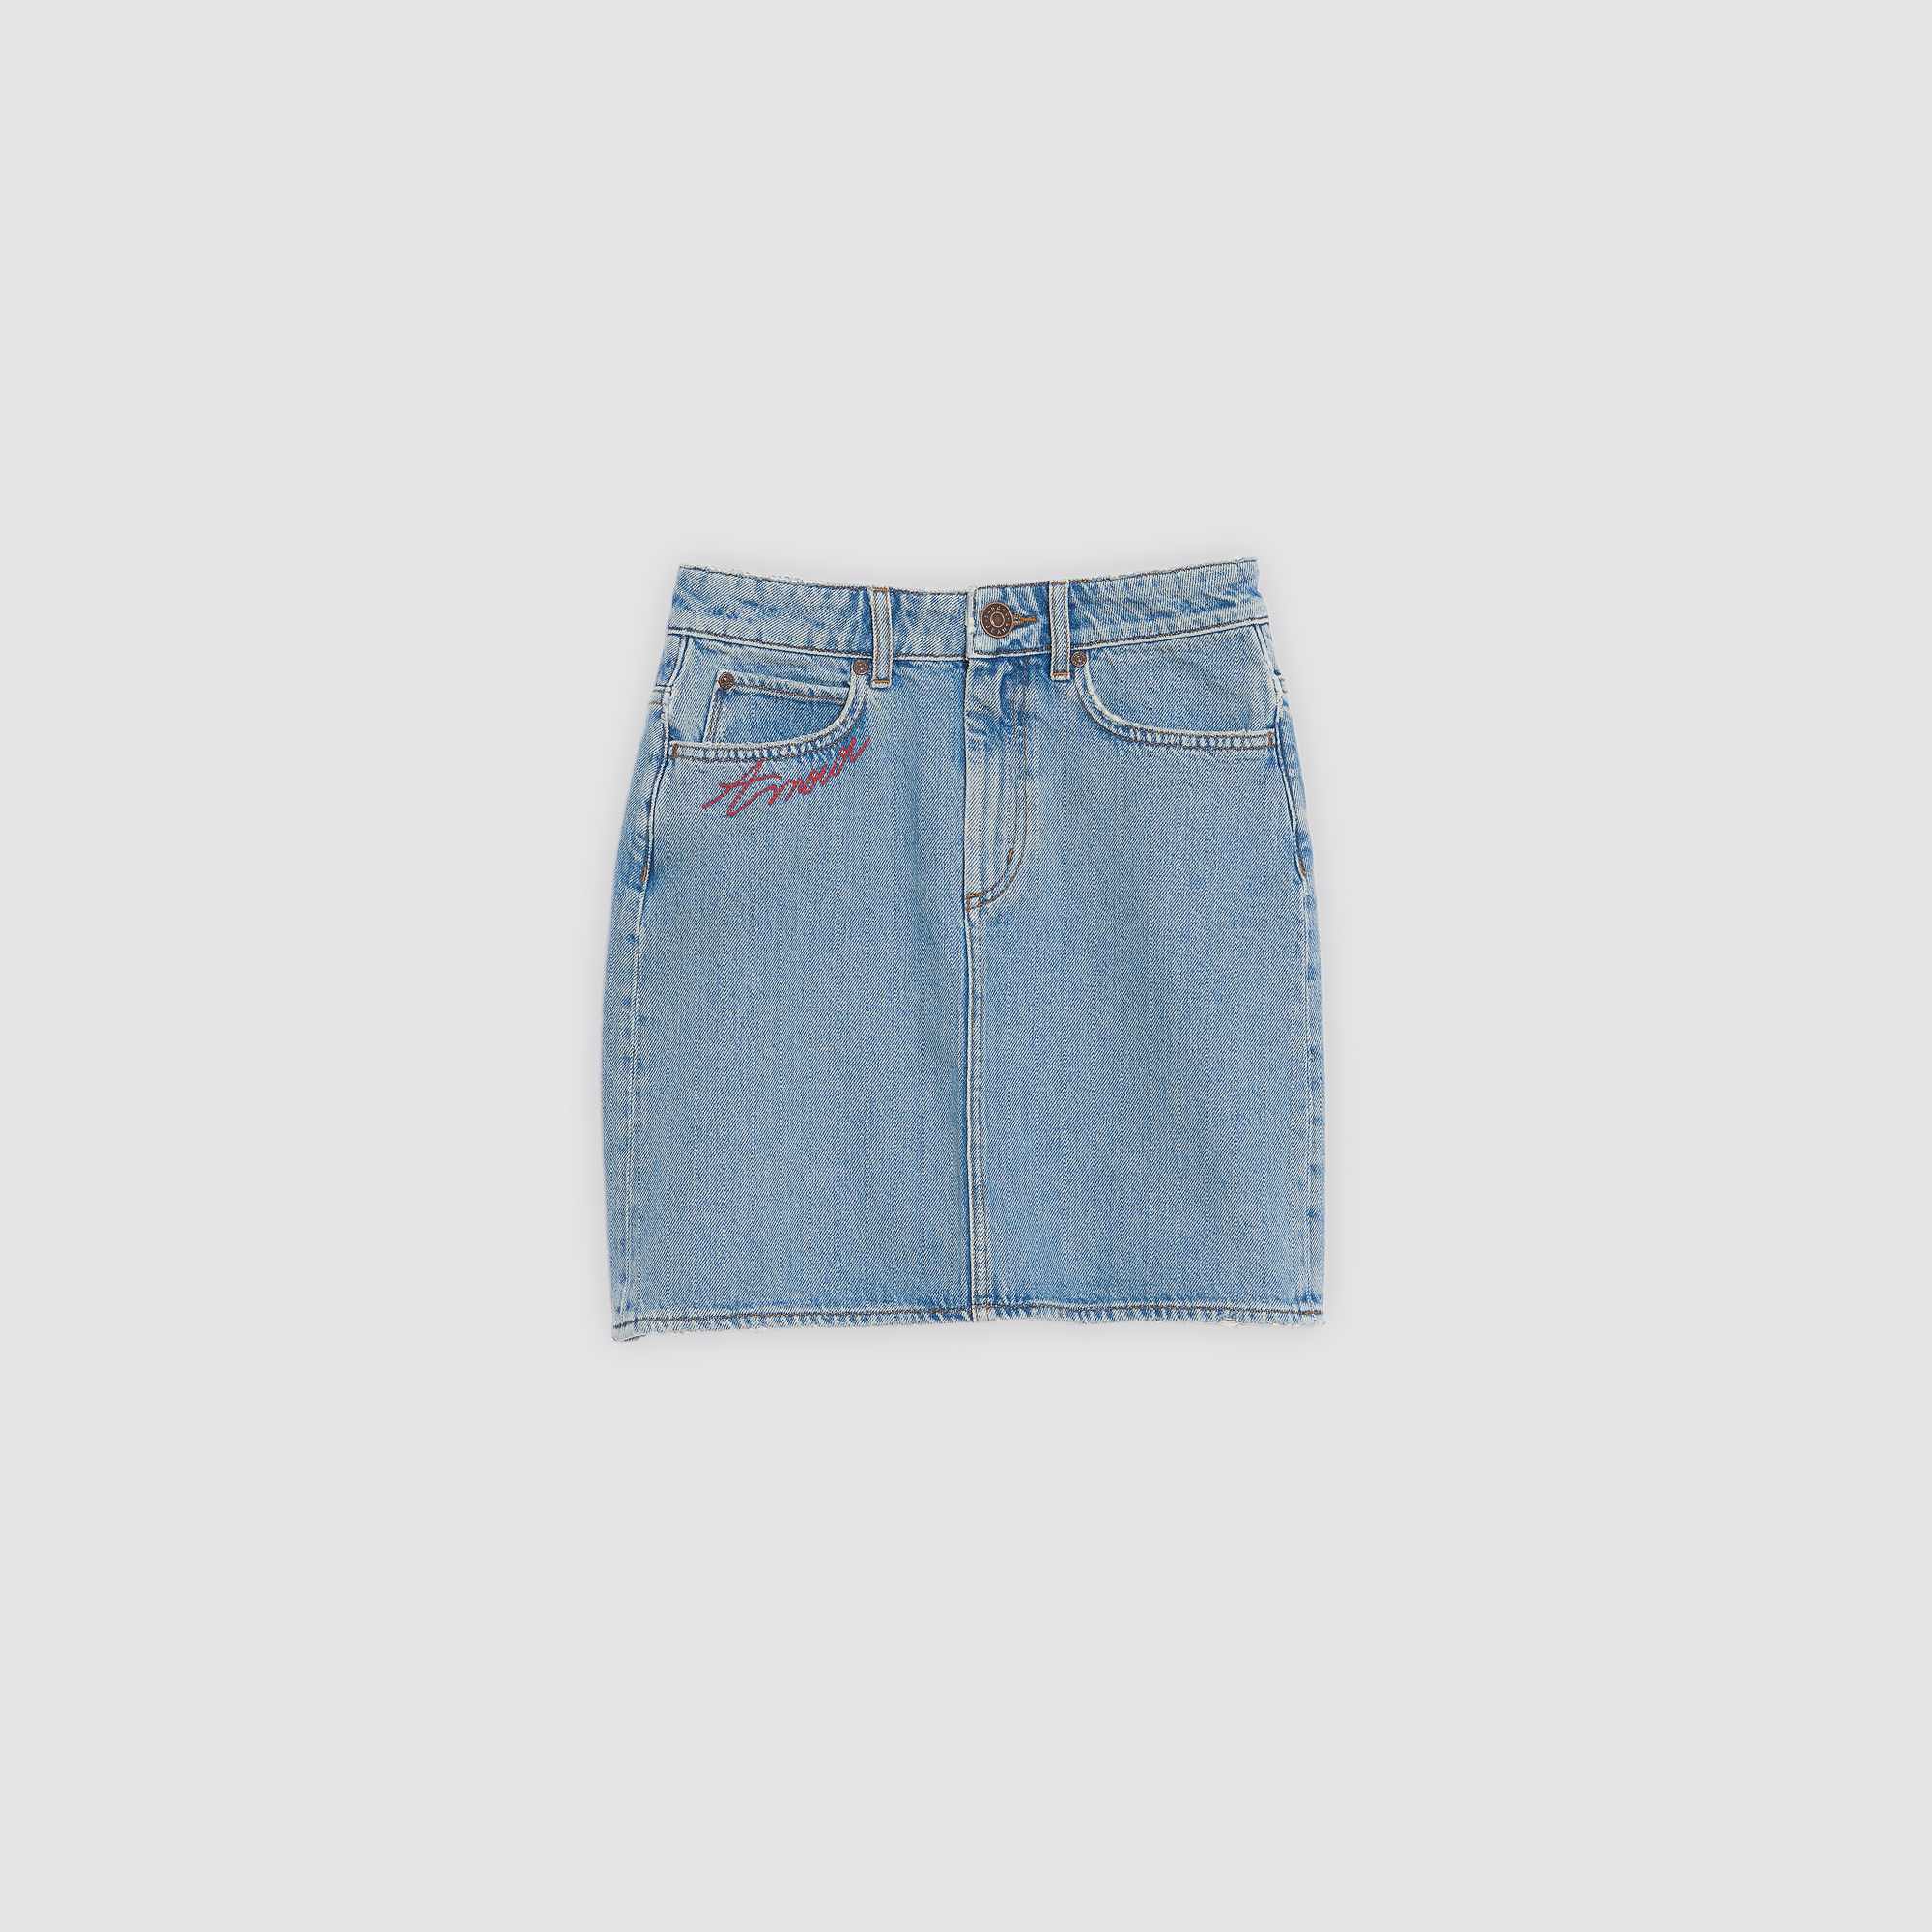 Gonna corta in jeans ricamata : Esclusiva web colore Blue Vintage - Denim